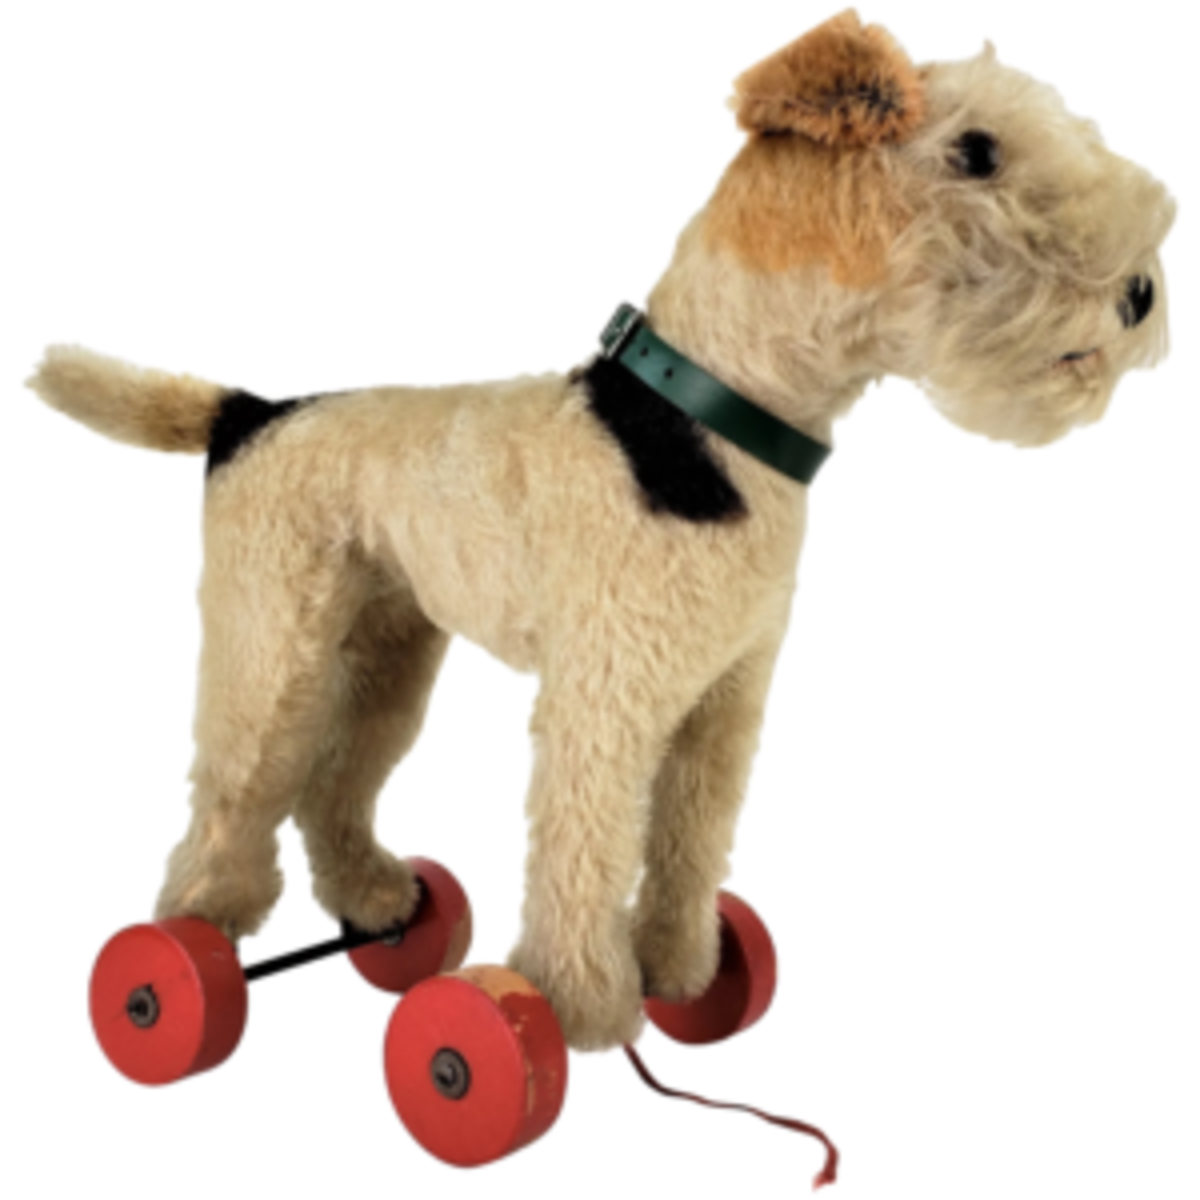 Steiff also made pull toys that are now highly collectible, such as this plush little dog pull toy, circa 1950; $395. Courtesy of Frederickpine: rubylane.com/shop/frederickpine